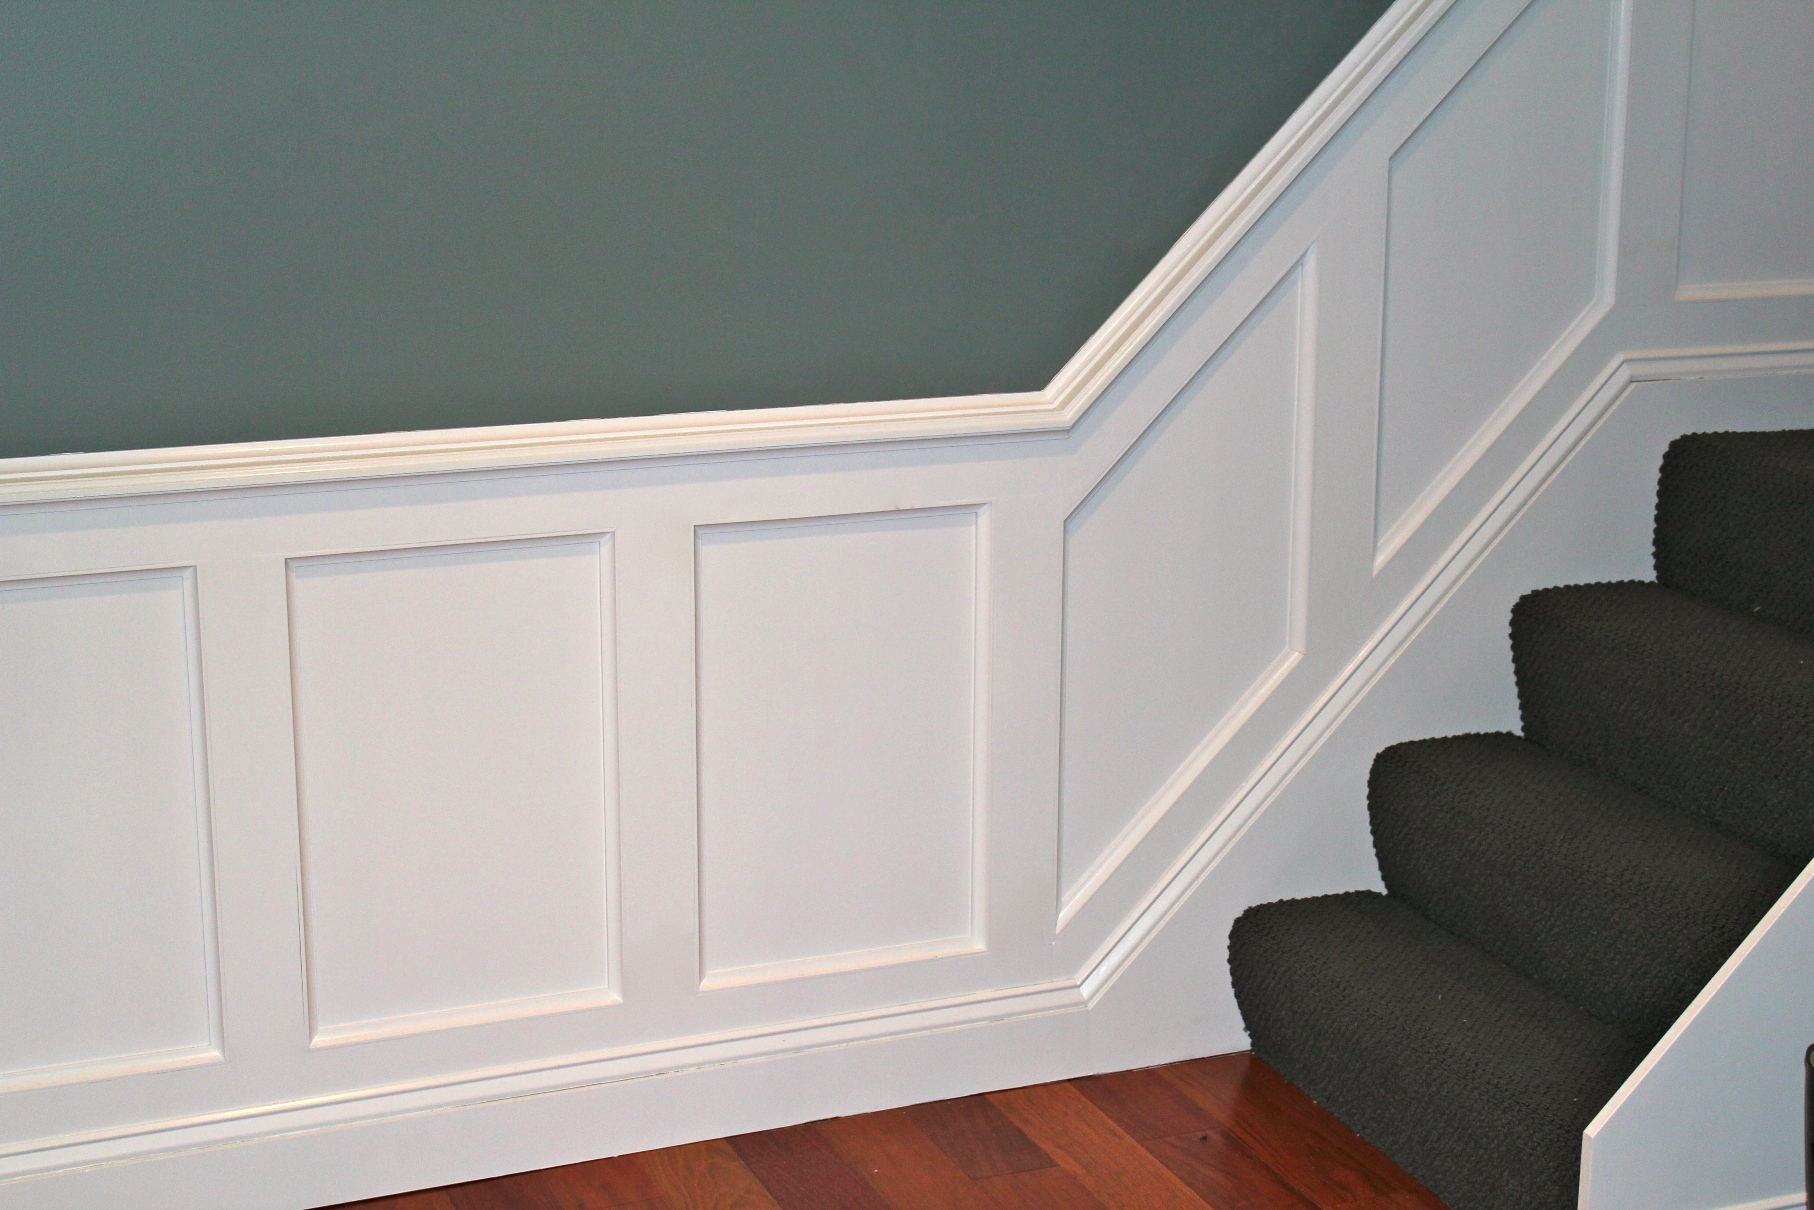 How To Install Wainscoting Pro Construction Guide